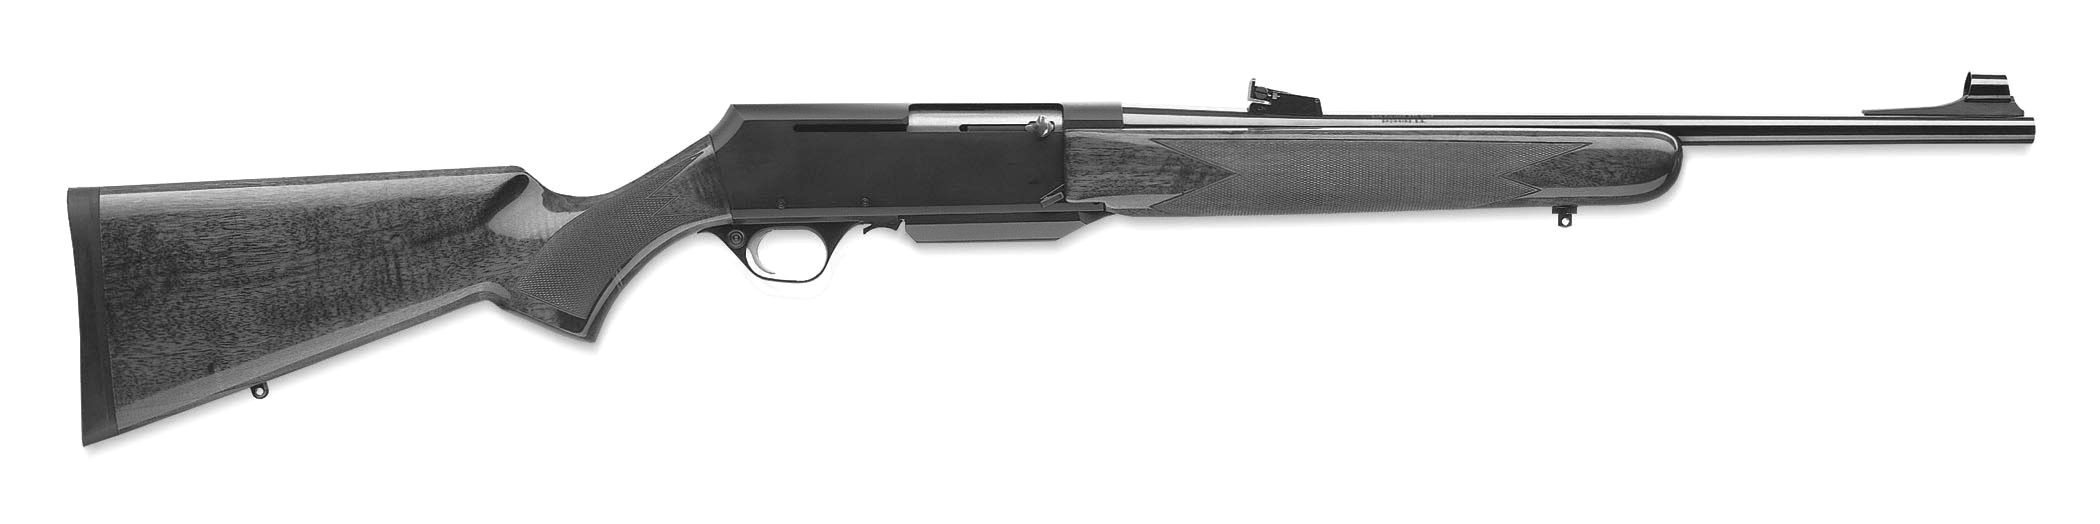 BAR Mark II Lightweight